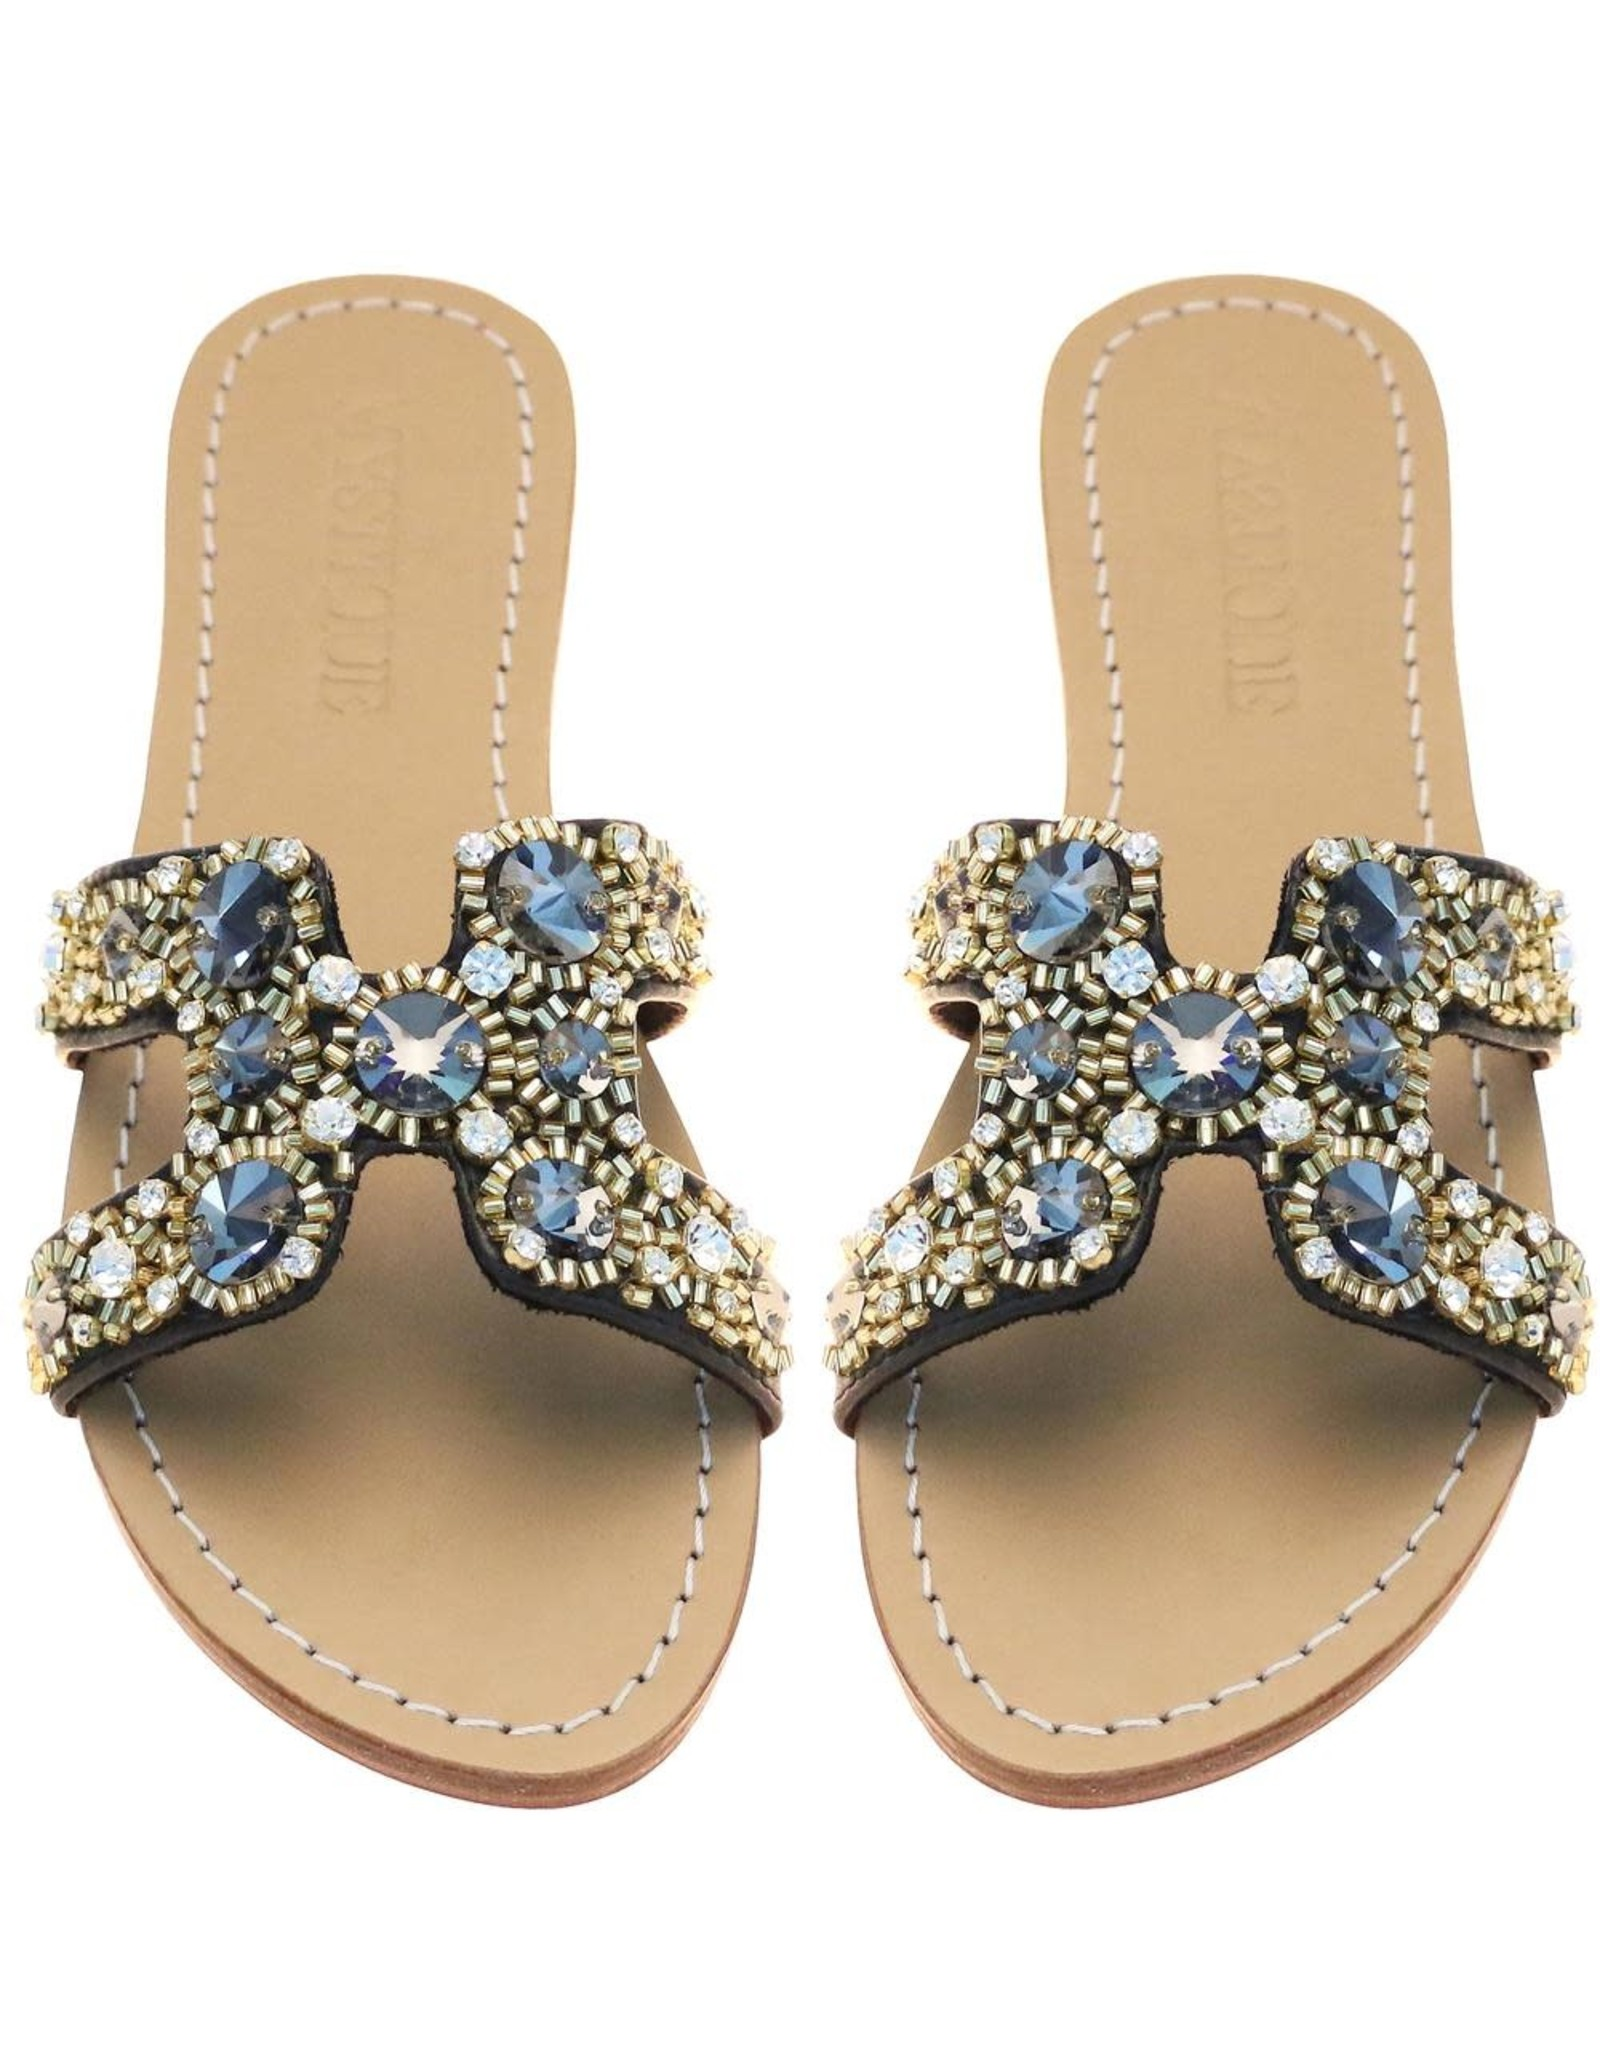 Mystique Akashi Sandals